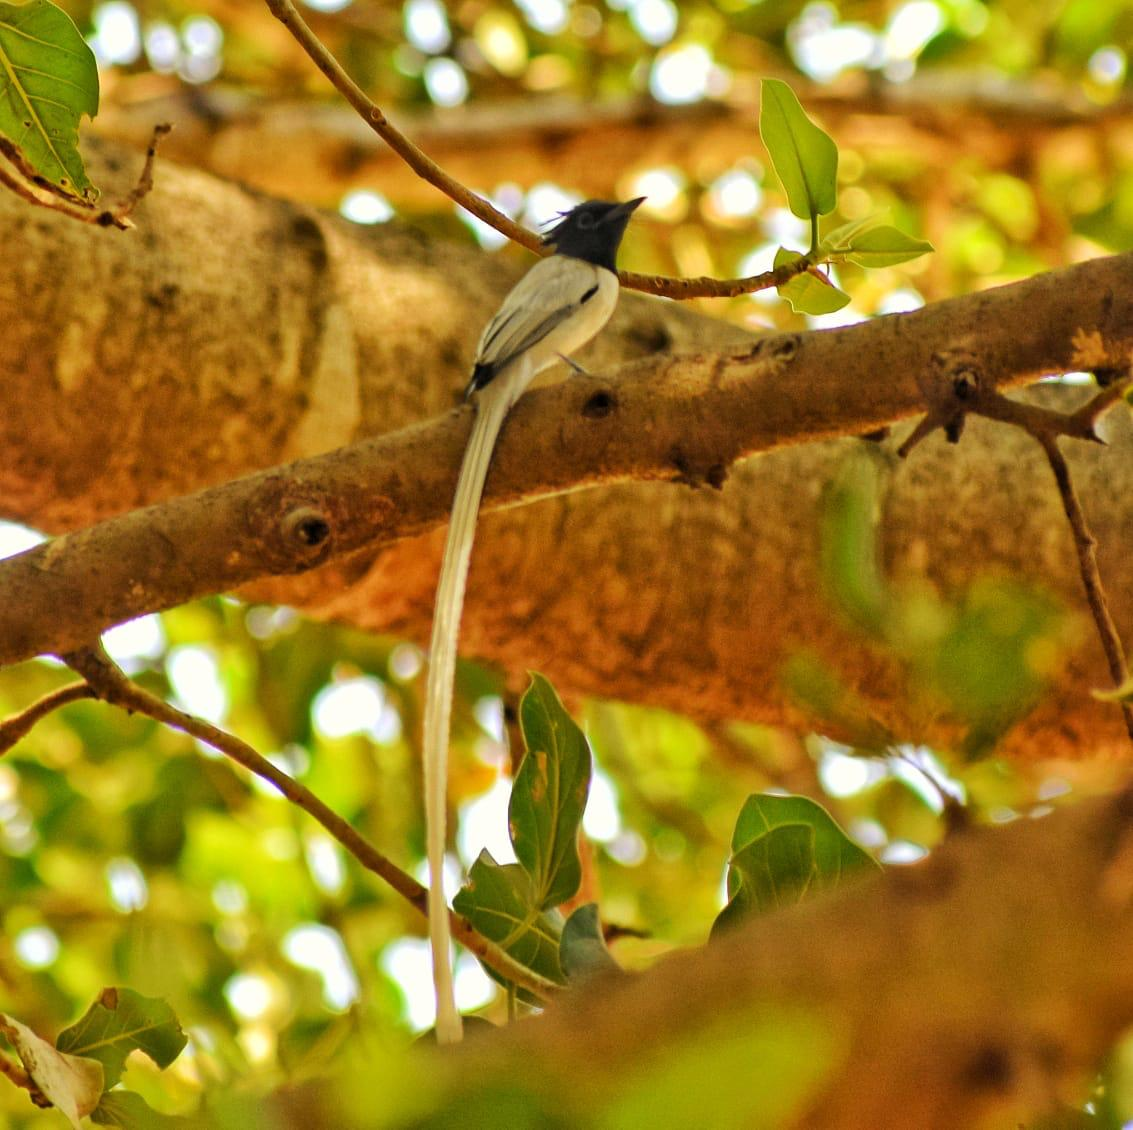 An Asian Paradise Flycatcher takes a break at @BangaloreAshram from its heavy workload. When you develop the habit of spending some time with yourself, you find that you are already in paradise.